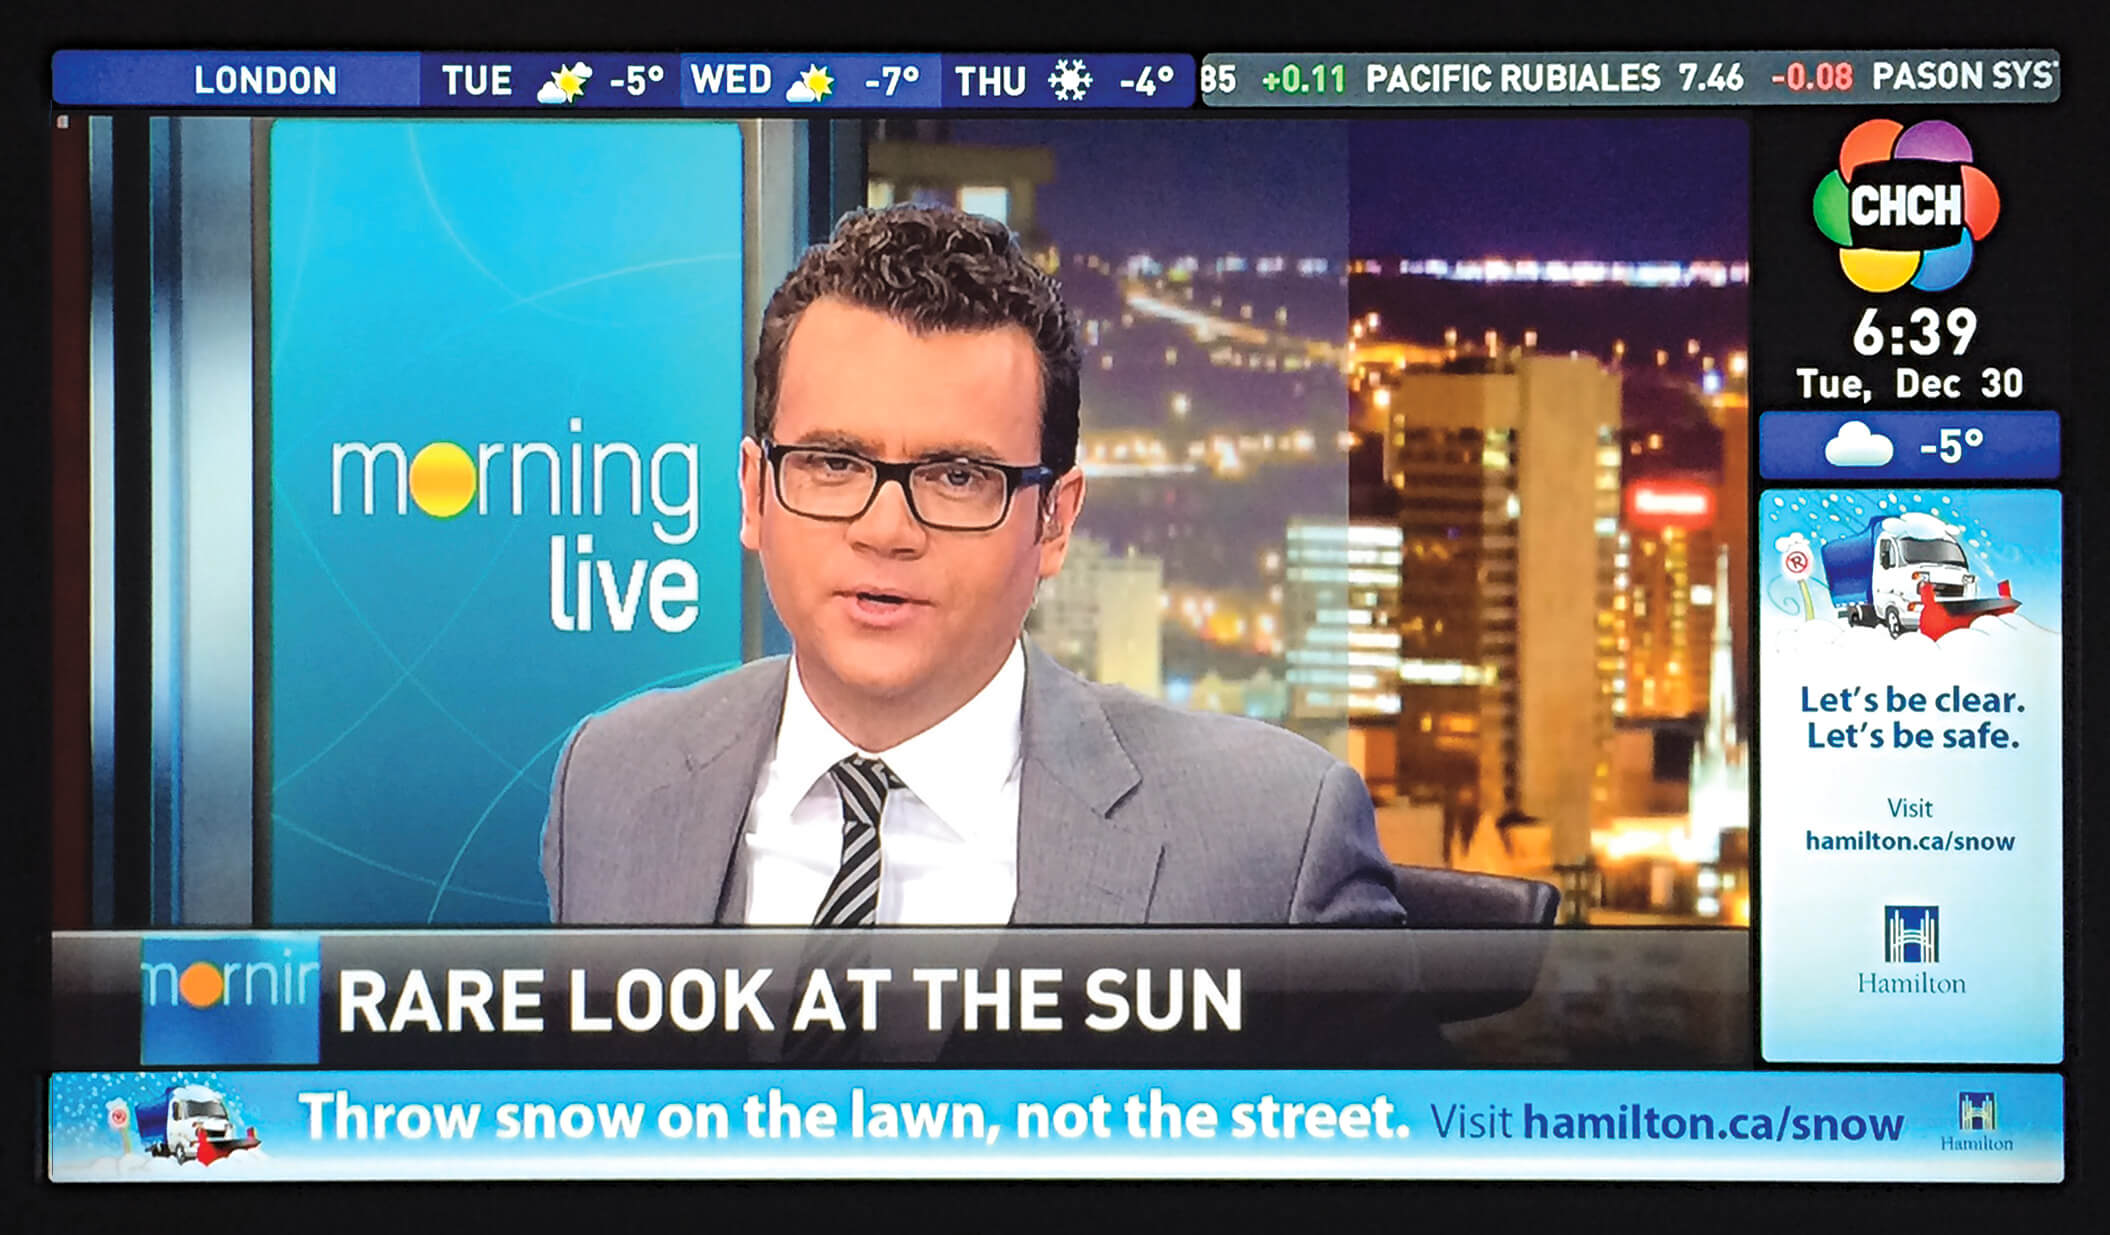 CHCH Morning Live ad